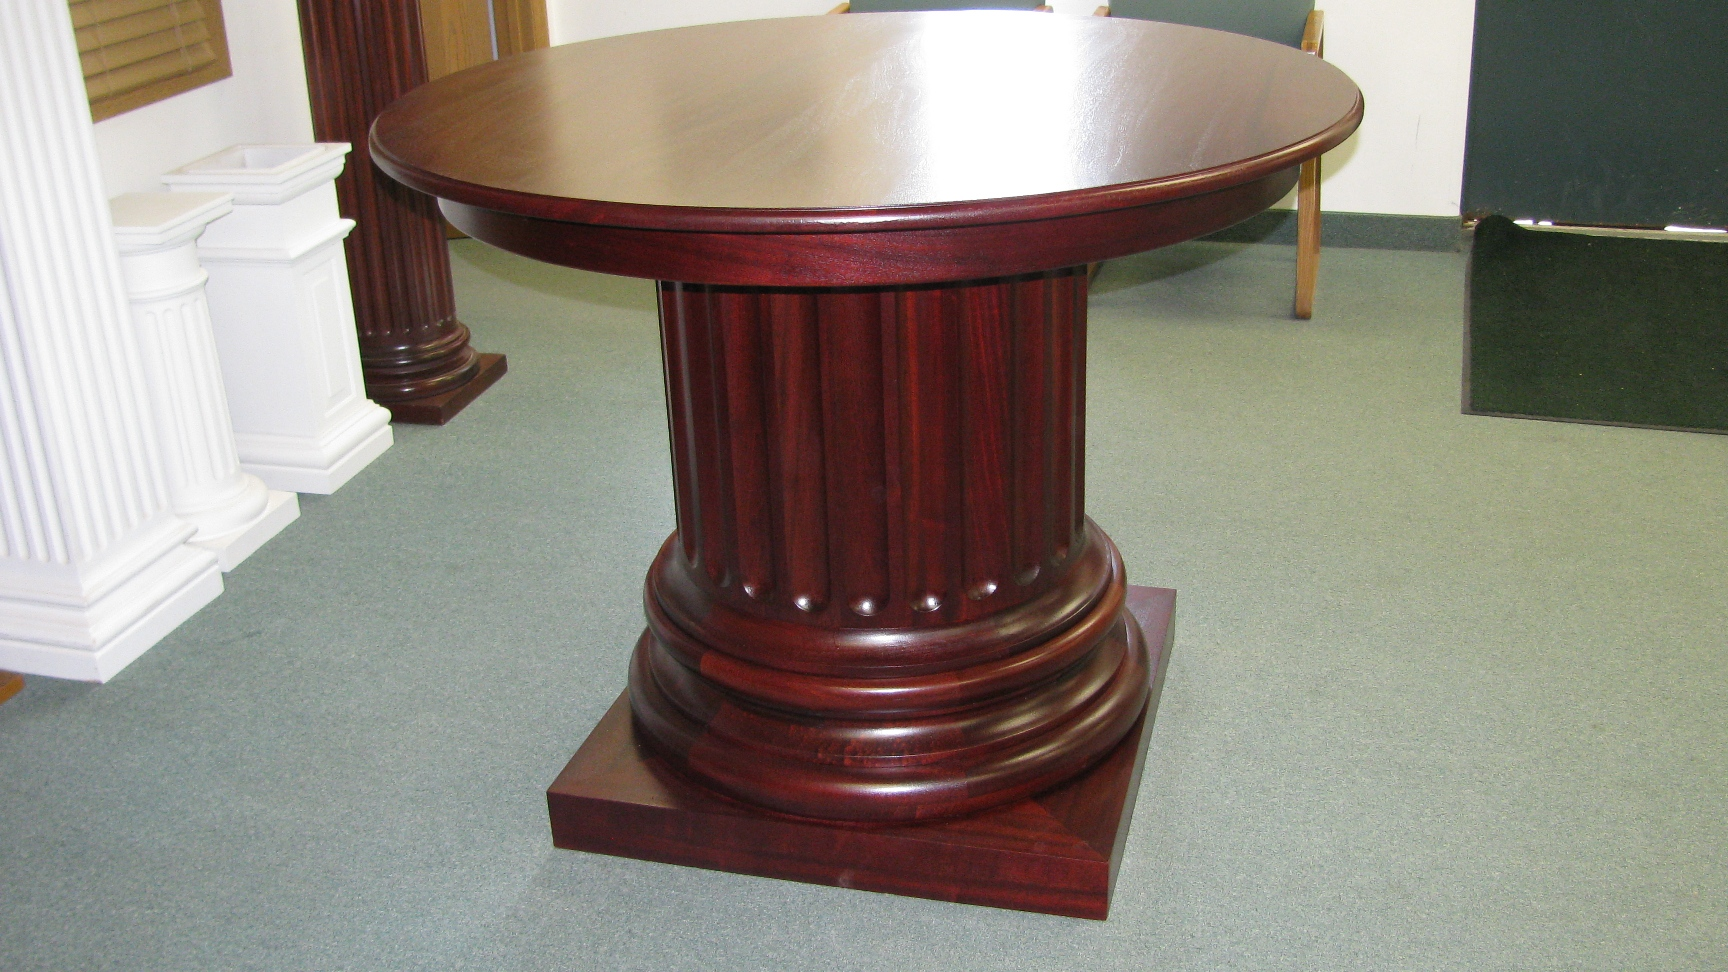 Mahogany table somerset door column co for Table column